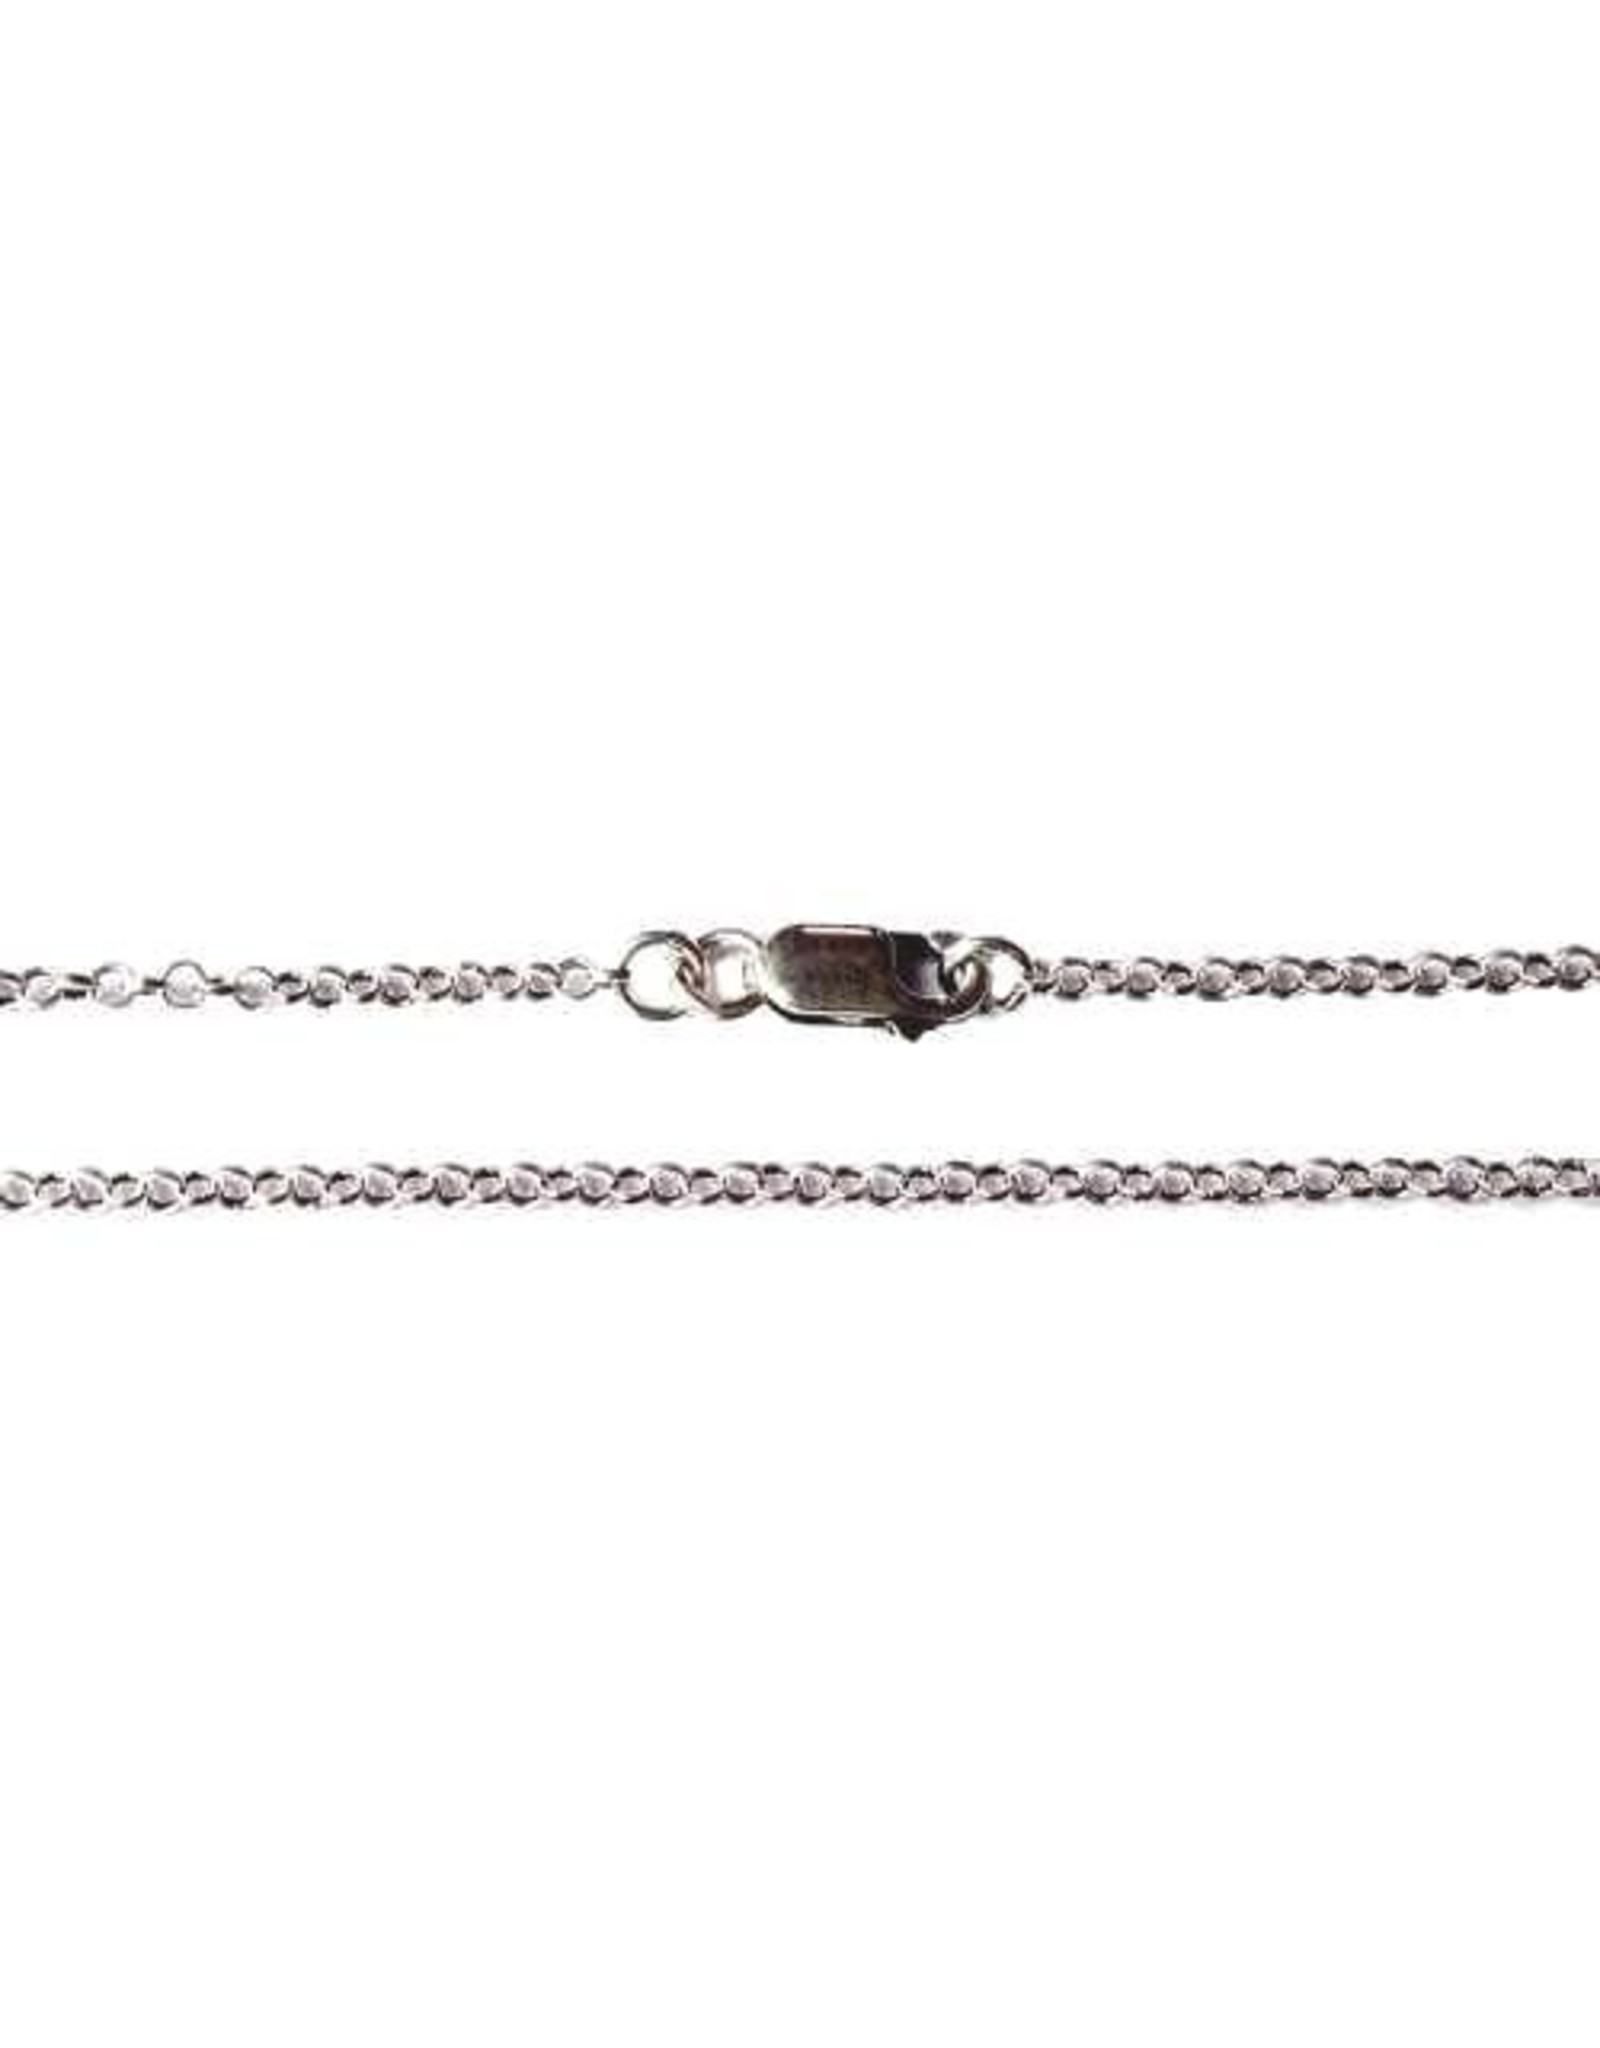 Necklace - round links